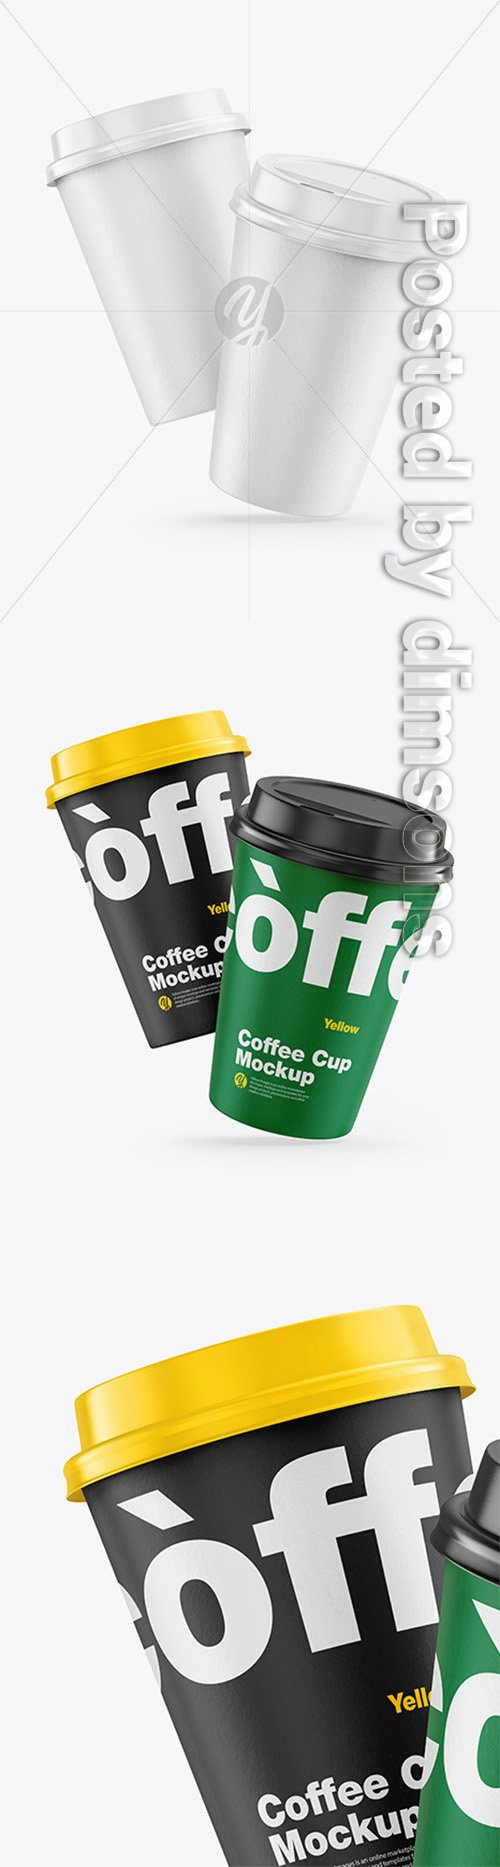 Paper Coffee Cups Mockup 66137 TIF